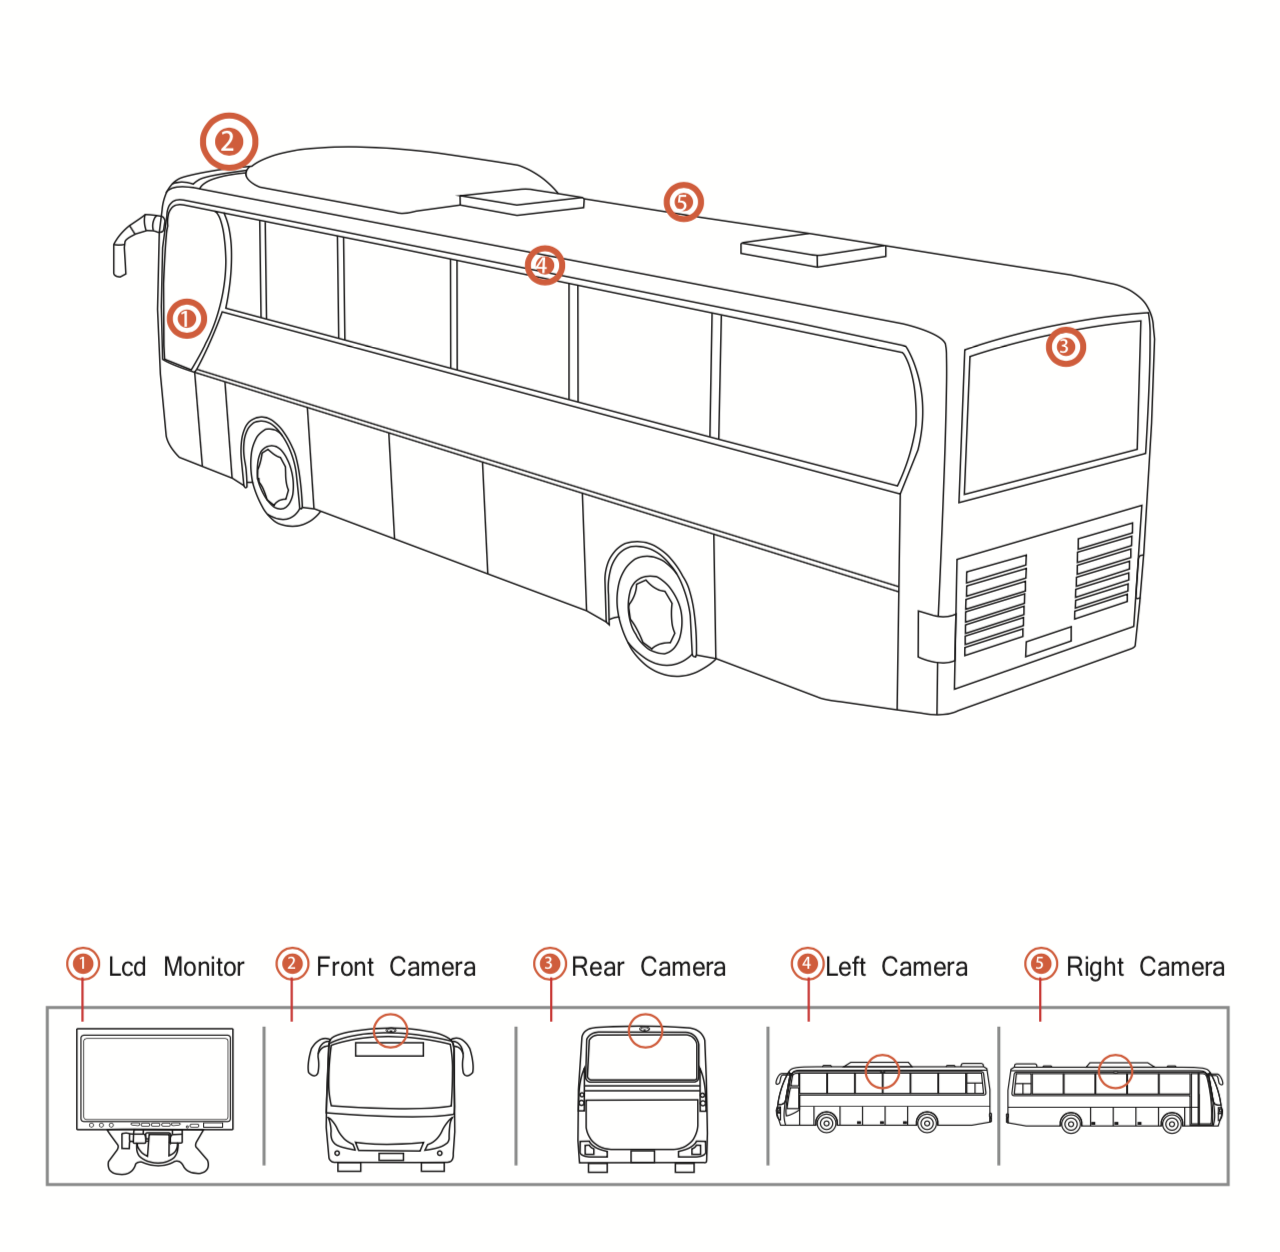 Bus/Coach - Standard example of the camera configuration for a bus or coach.